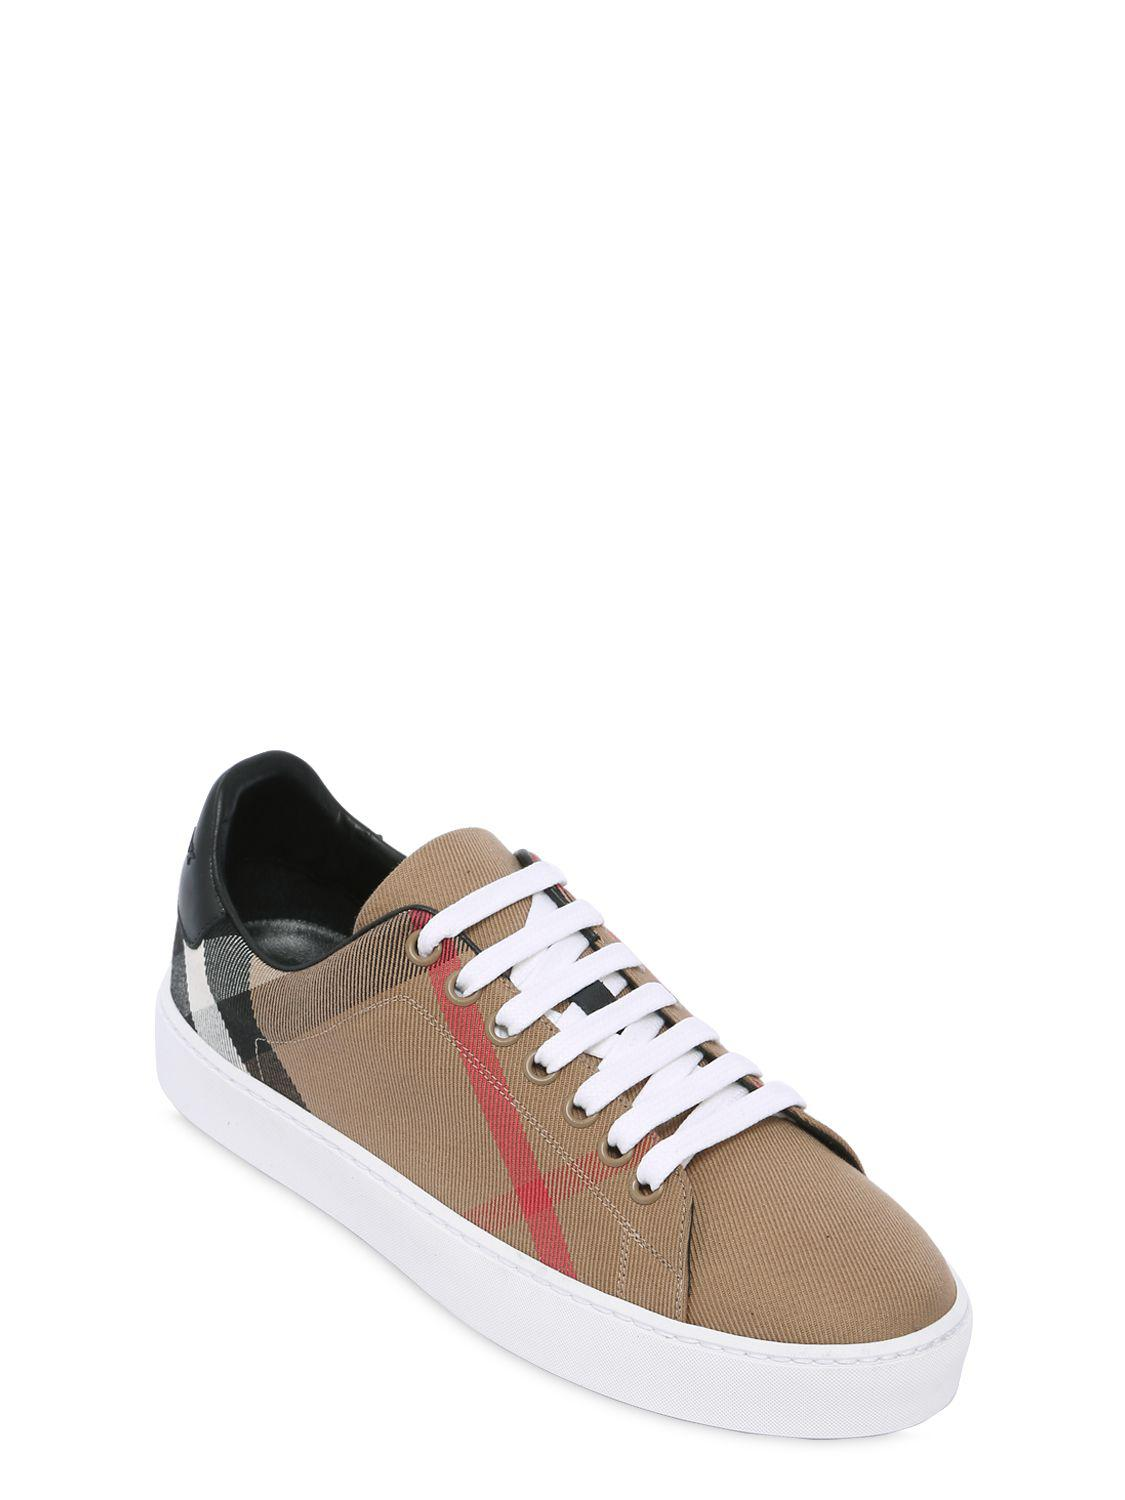 Burberry 20MM CLASSIC CHECK CANVAS SNEAKERS Sale Wide Range Of HvZZAGVv